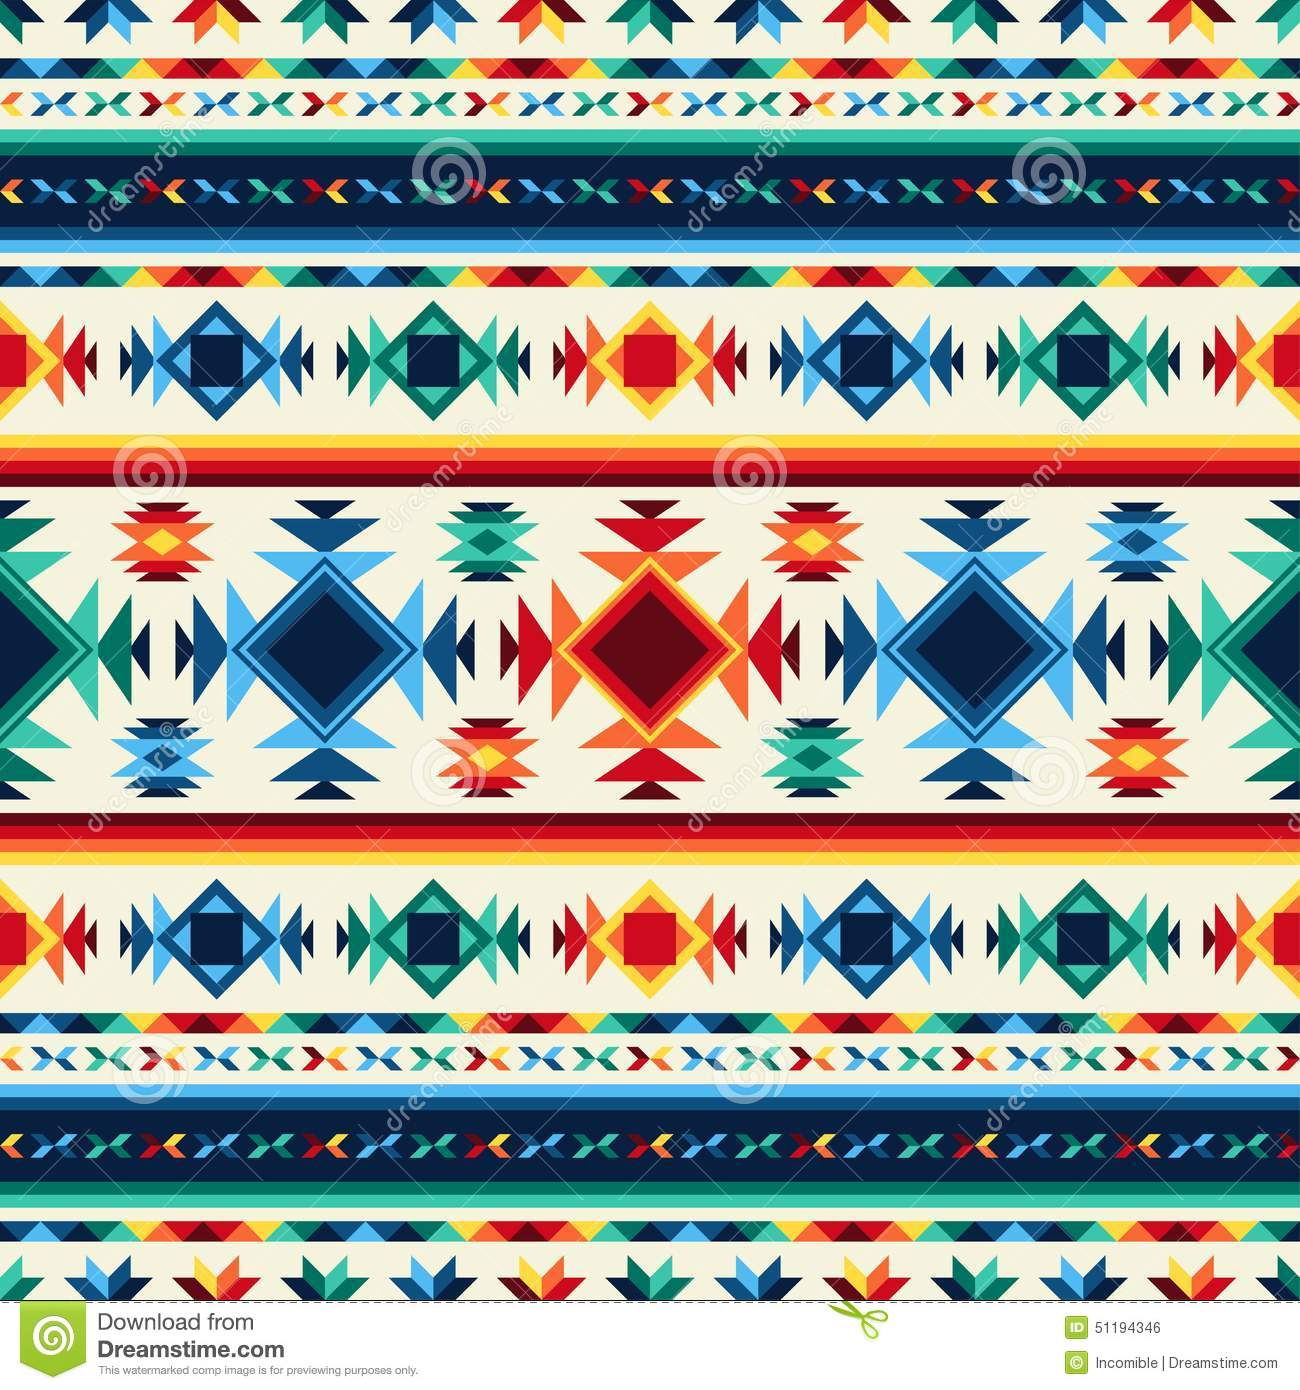 Native American Design Wallpaper : Tribal abstract seamless pattern aztec geometric stock